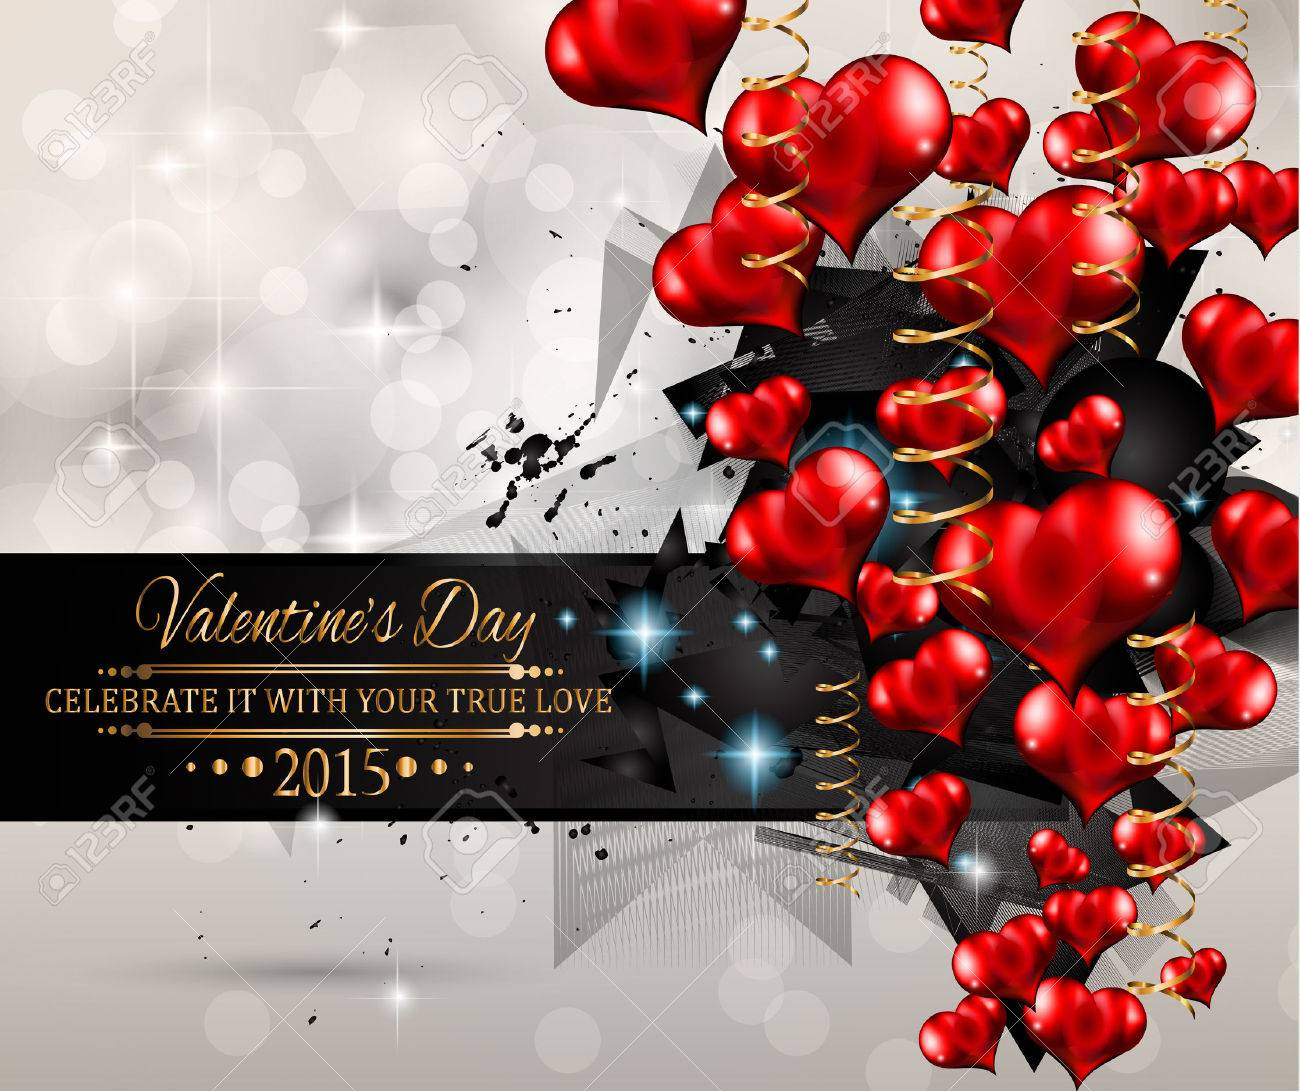 san valentines day background for dinner invitations romantic letterheads book covers poster layout - San Valentines Day